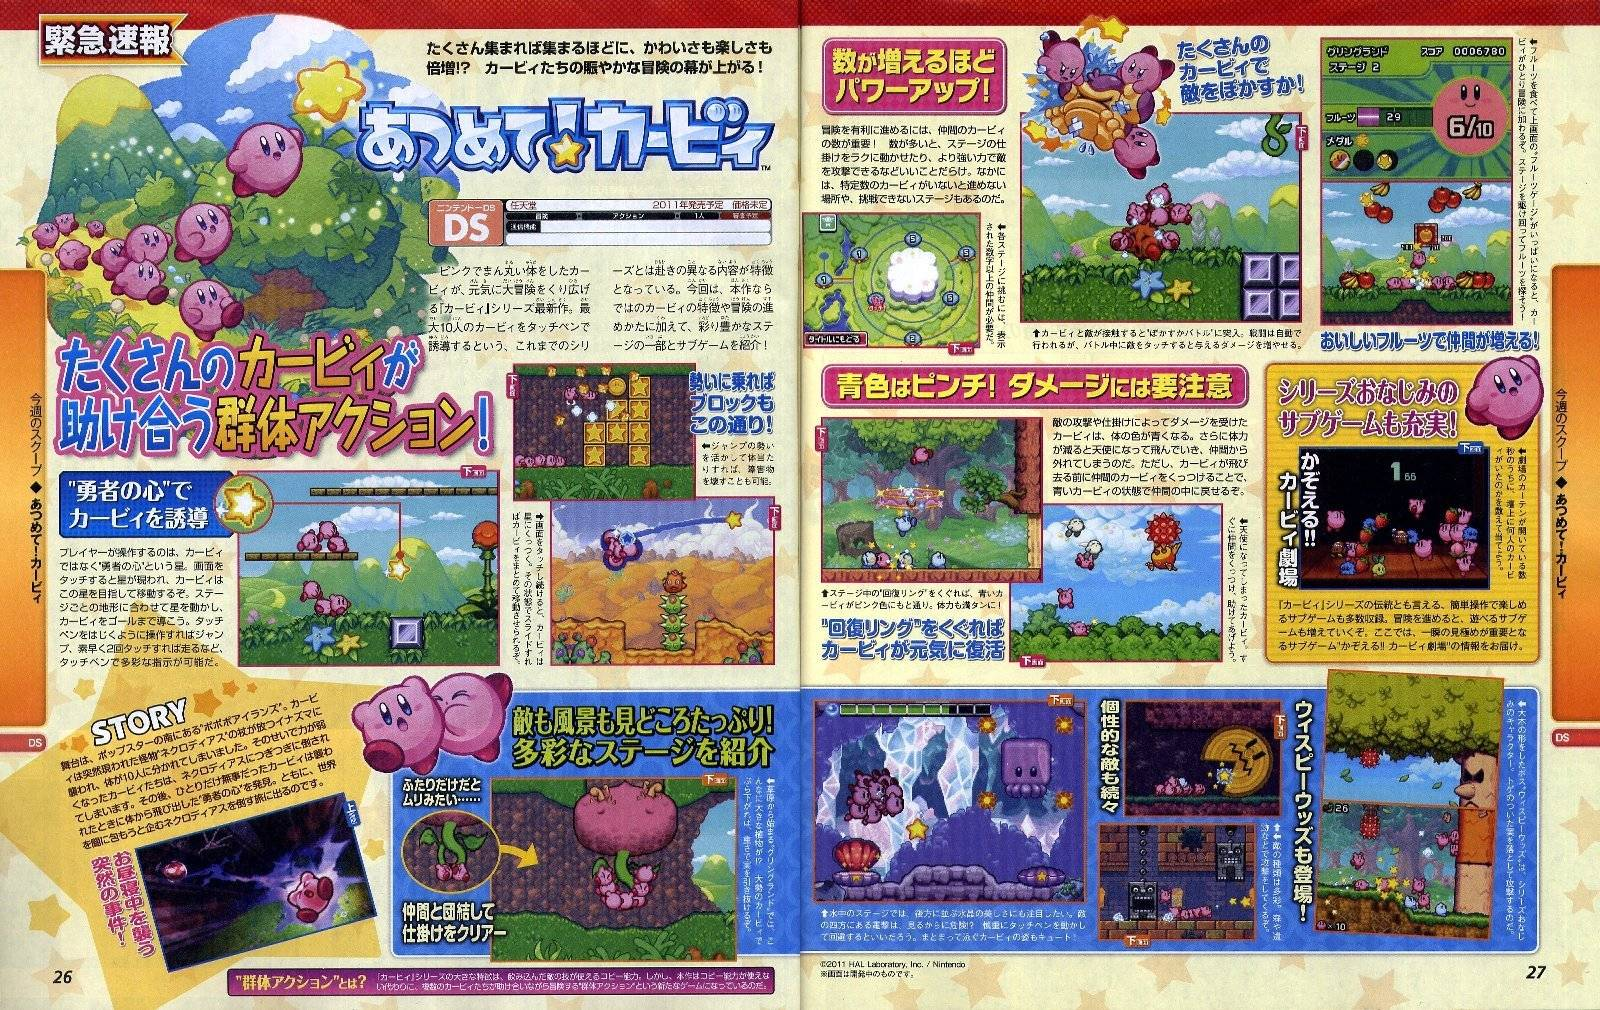 Atsumete! Kirby scan1